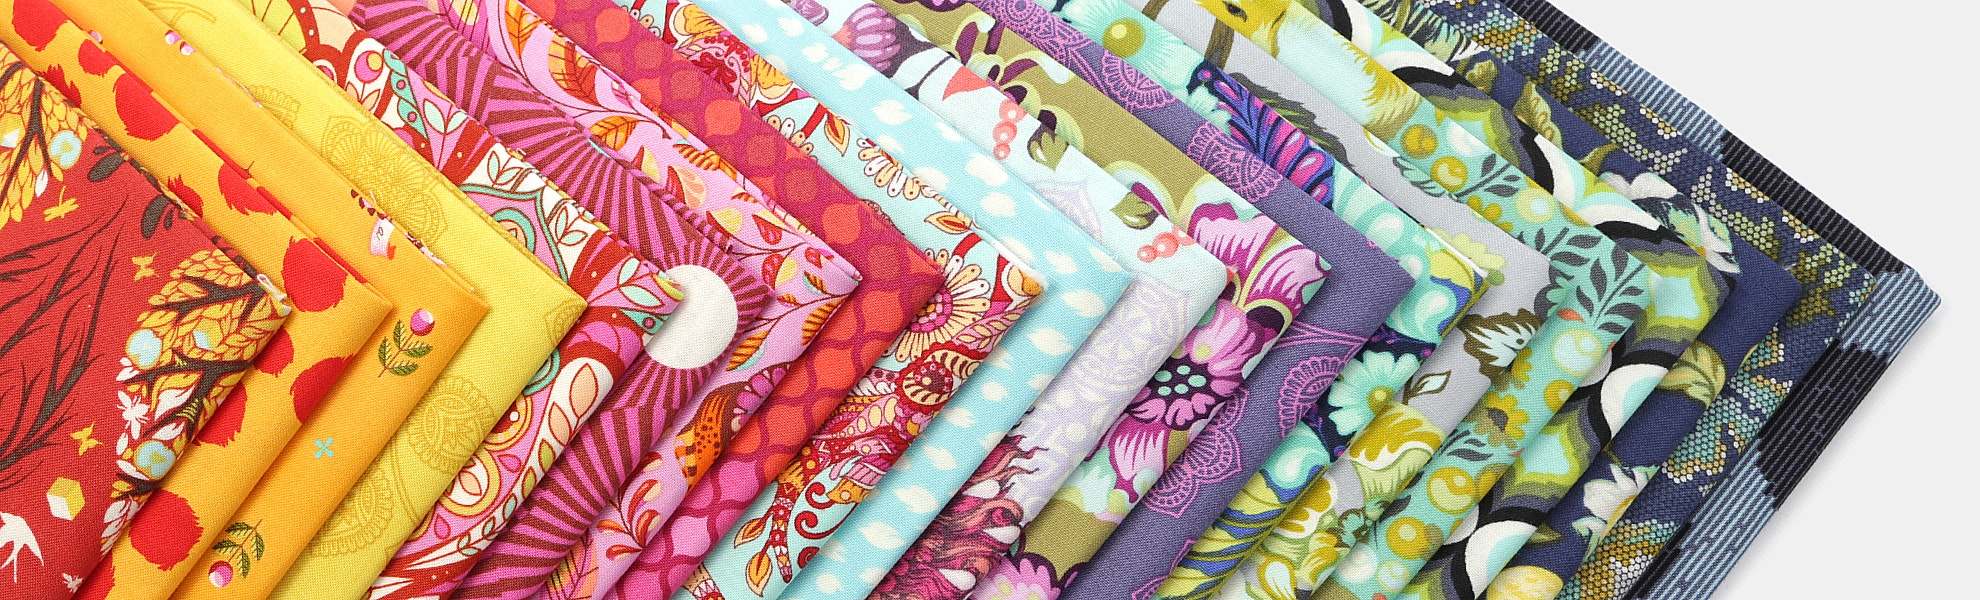 Throwback 2nd Ed Fat Quarter Bundle by Tula Pink